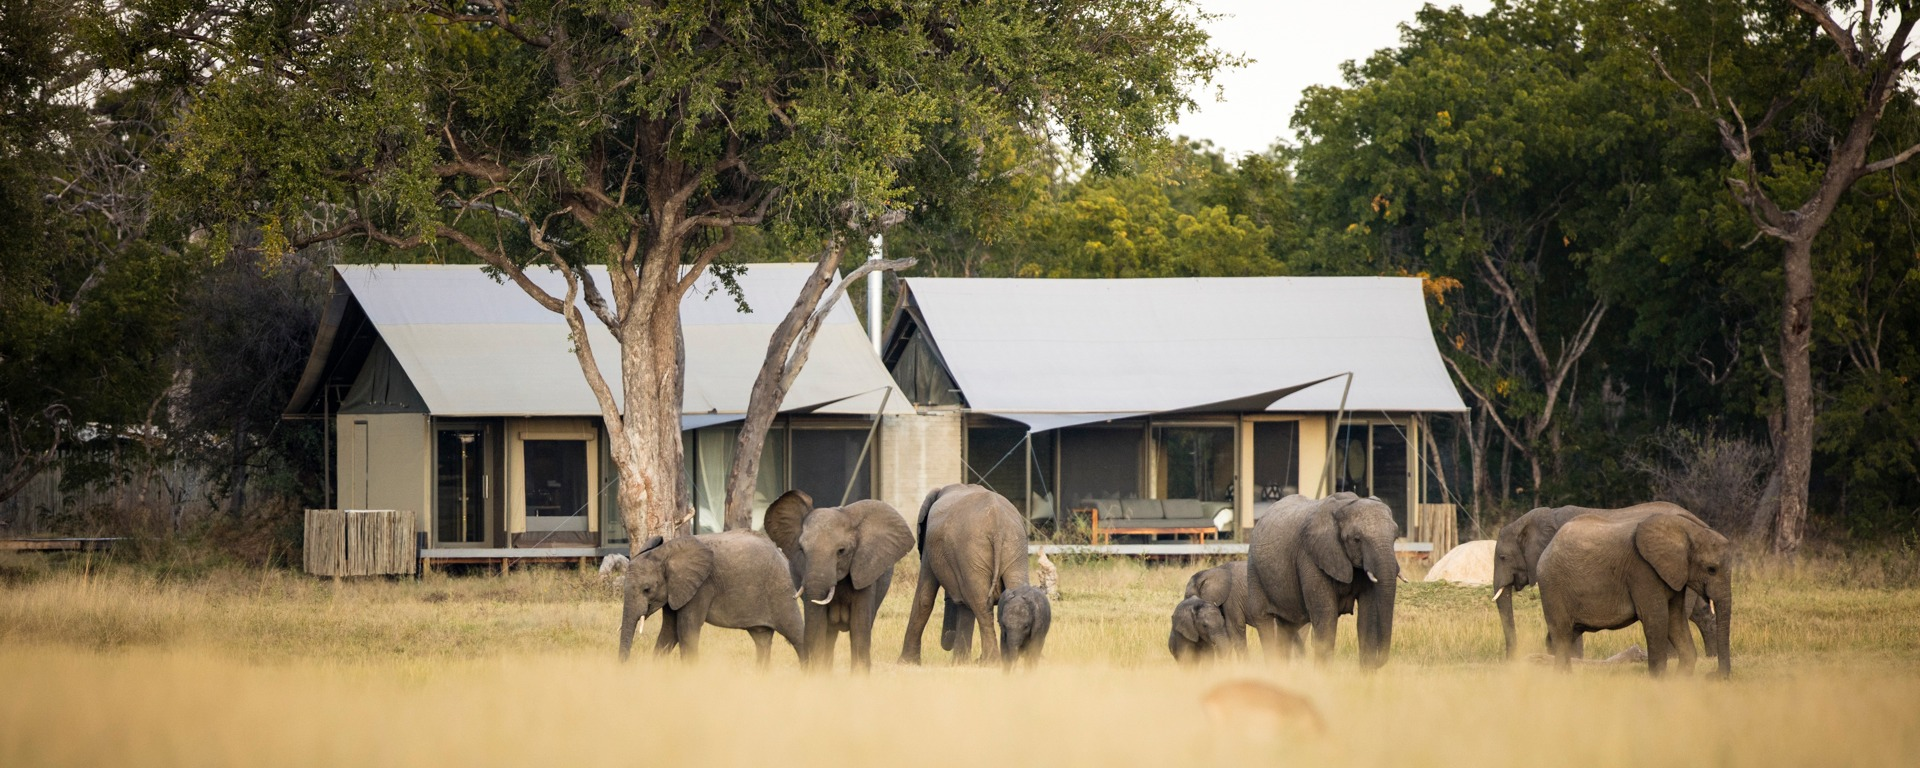 Ultimate Guide to Zimbabwe Safari (Things to Do, Cost & Accommodation)